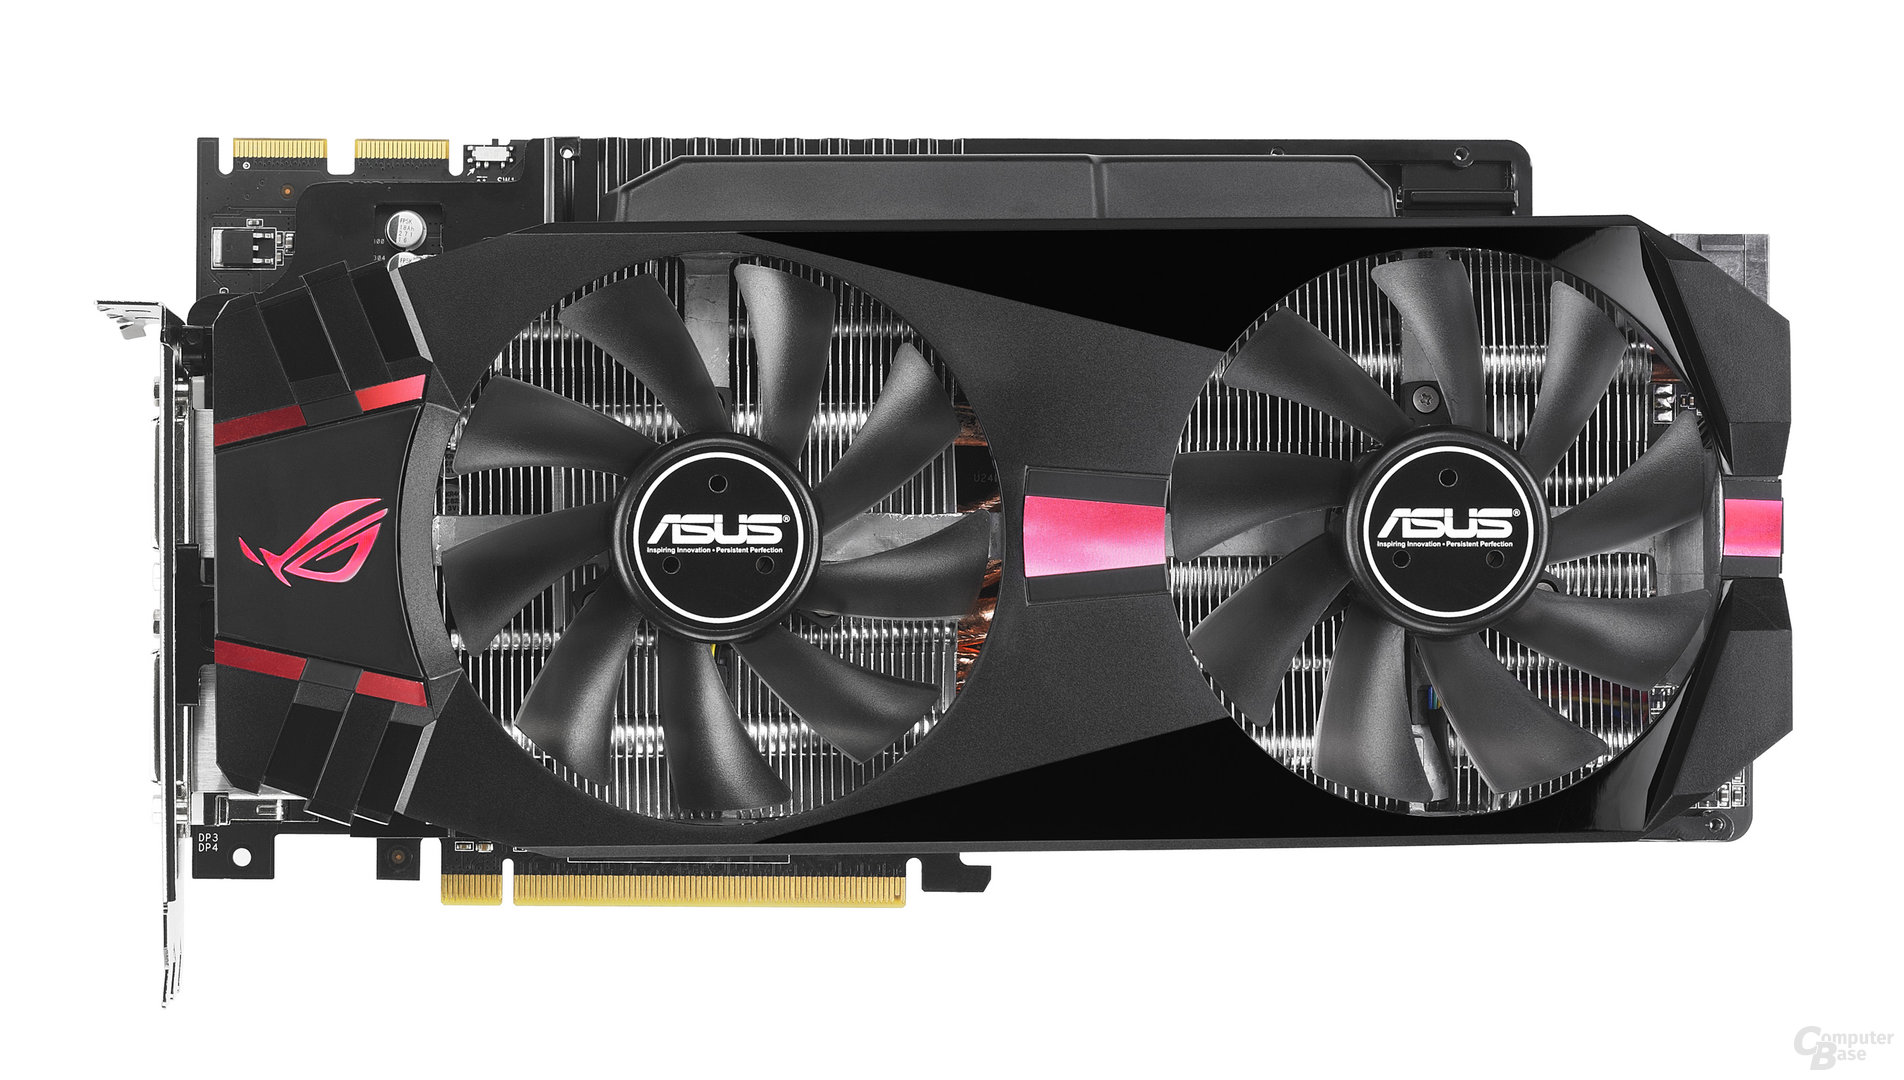 Asus Matrix HD 7970 GHz Edition